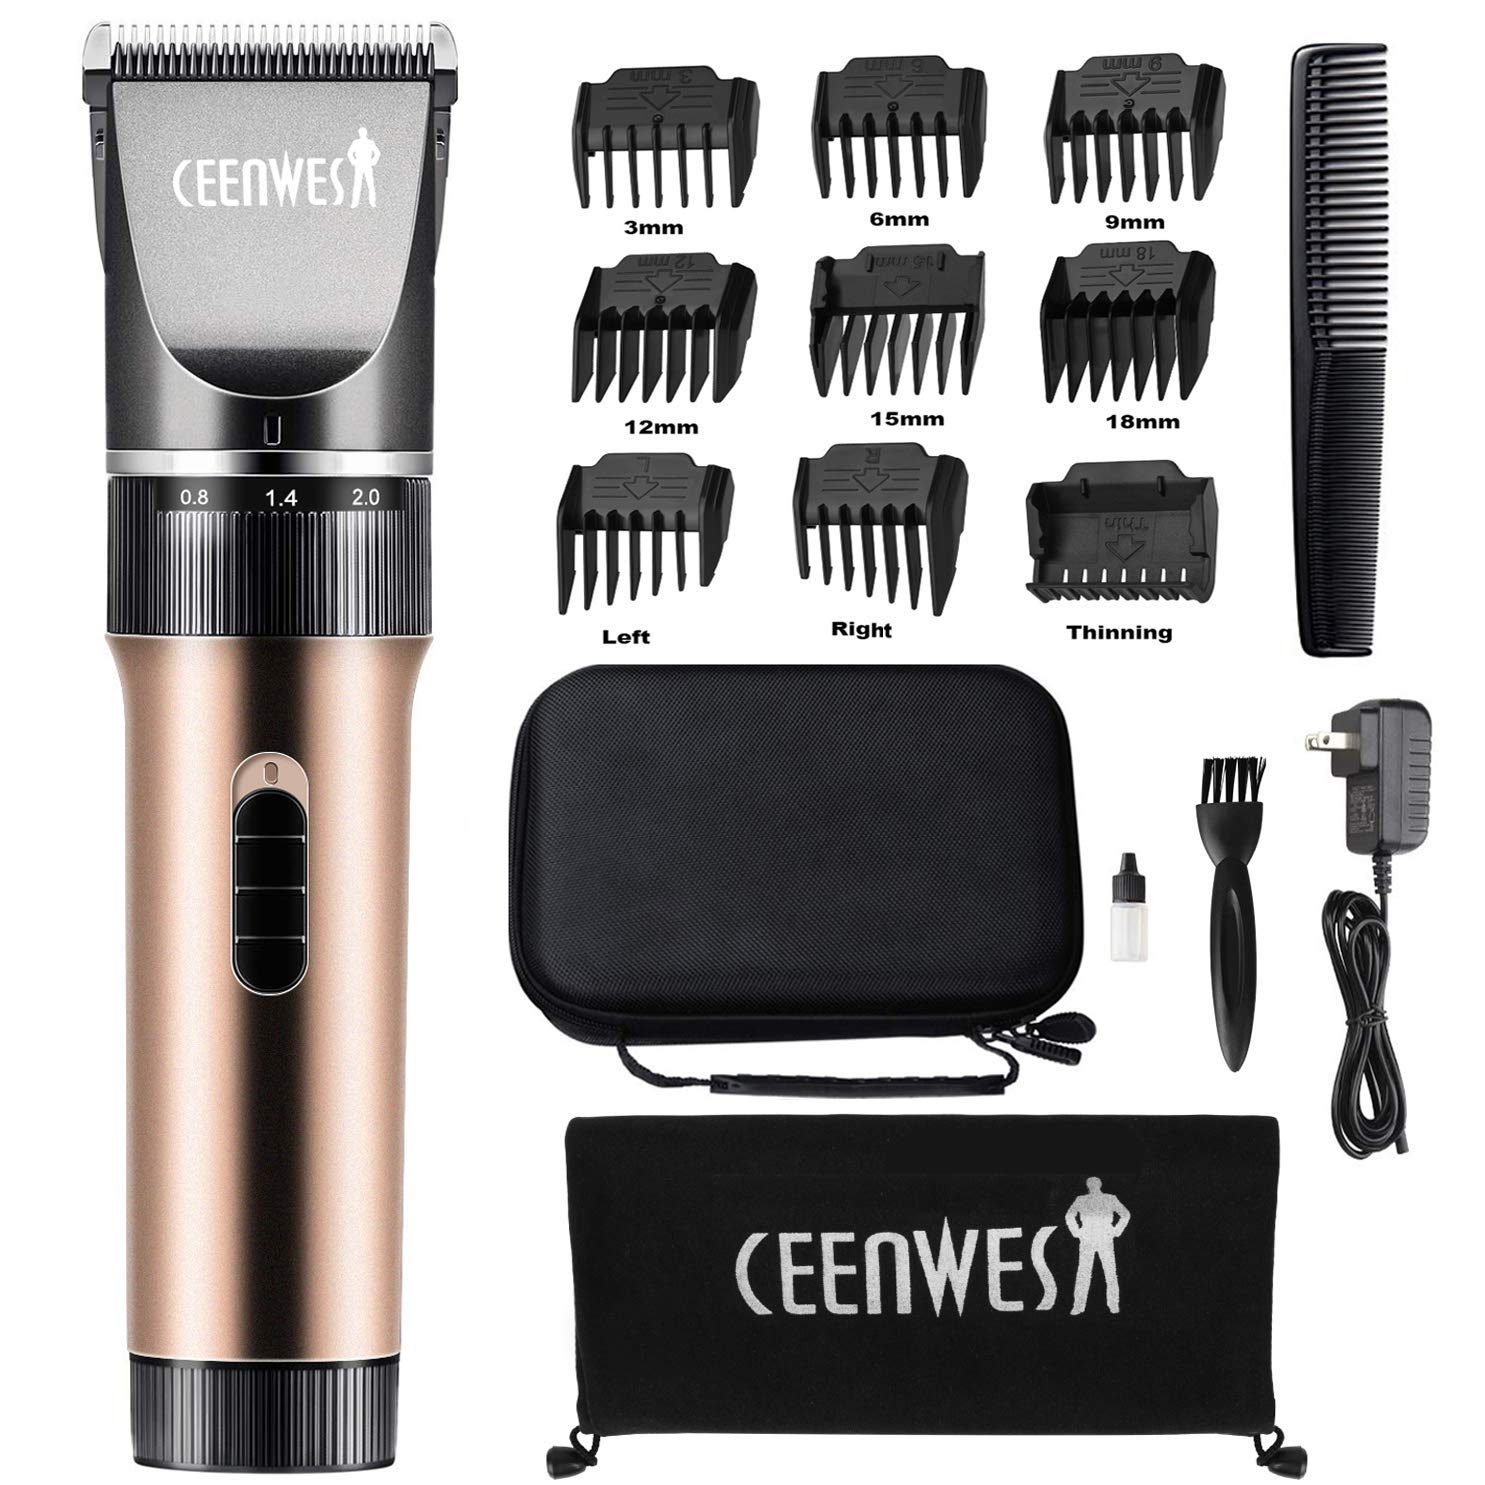 Ceenwes Clippers Cordless Trimmers Rechargeable